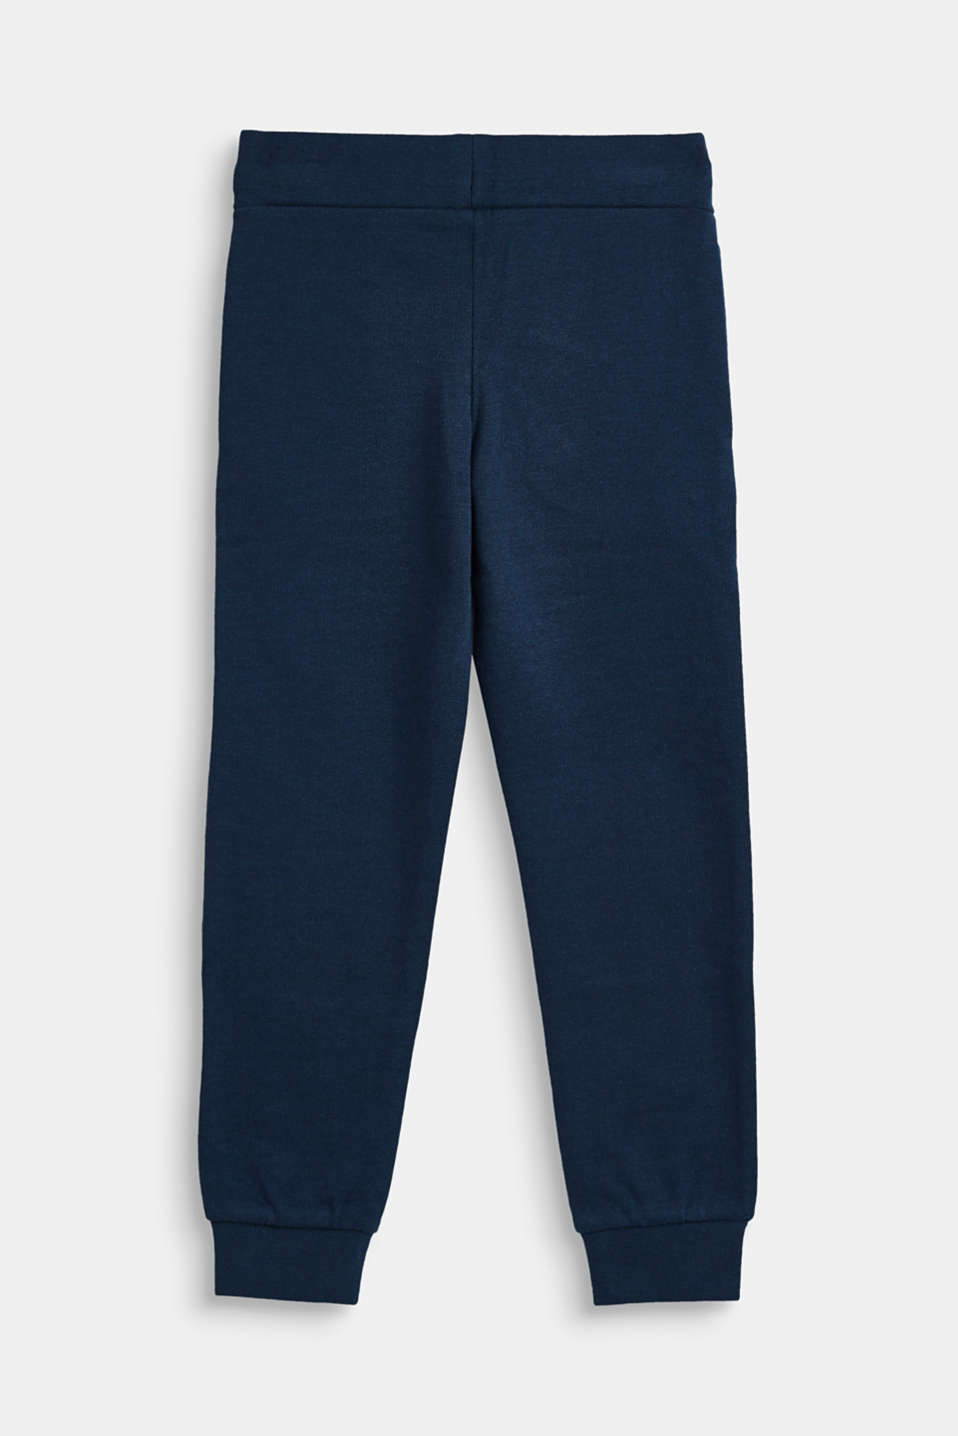 Sweatshirt tracksuit bottoms with a logo print, 100% cotton, NAVY, detail image number 1